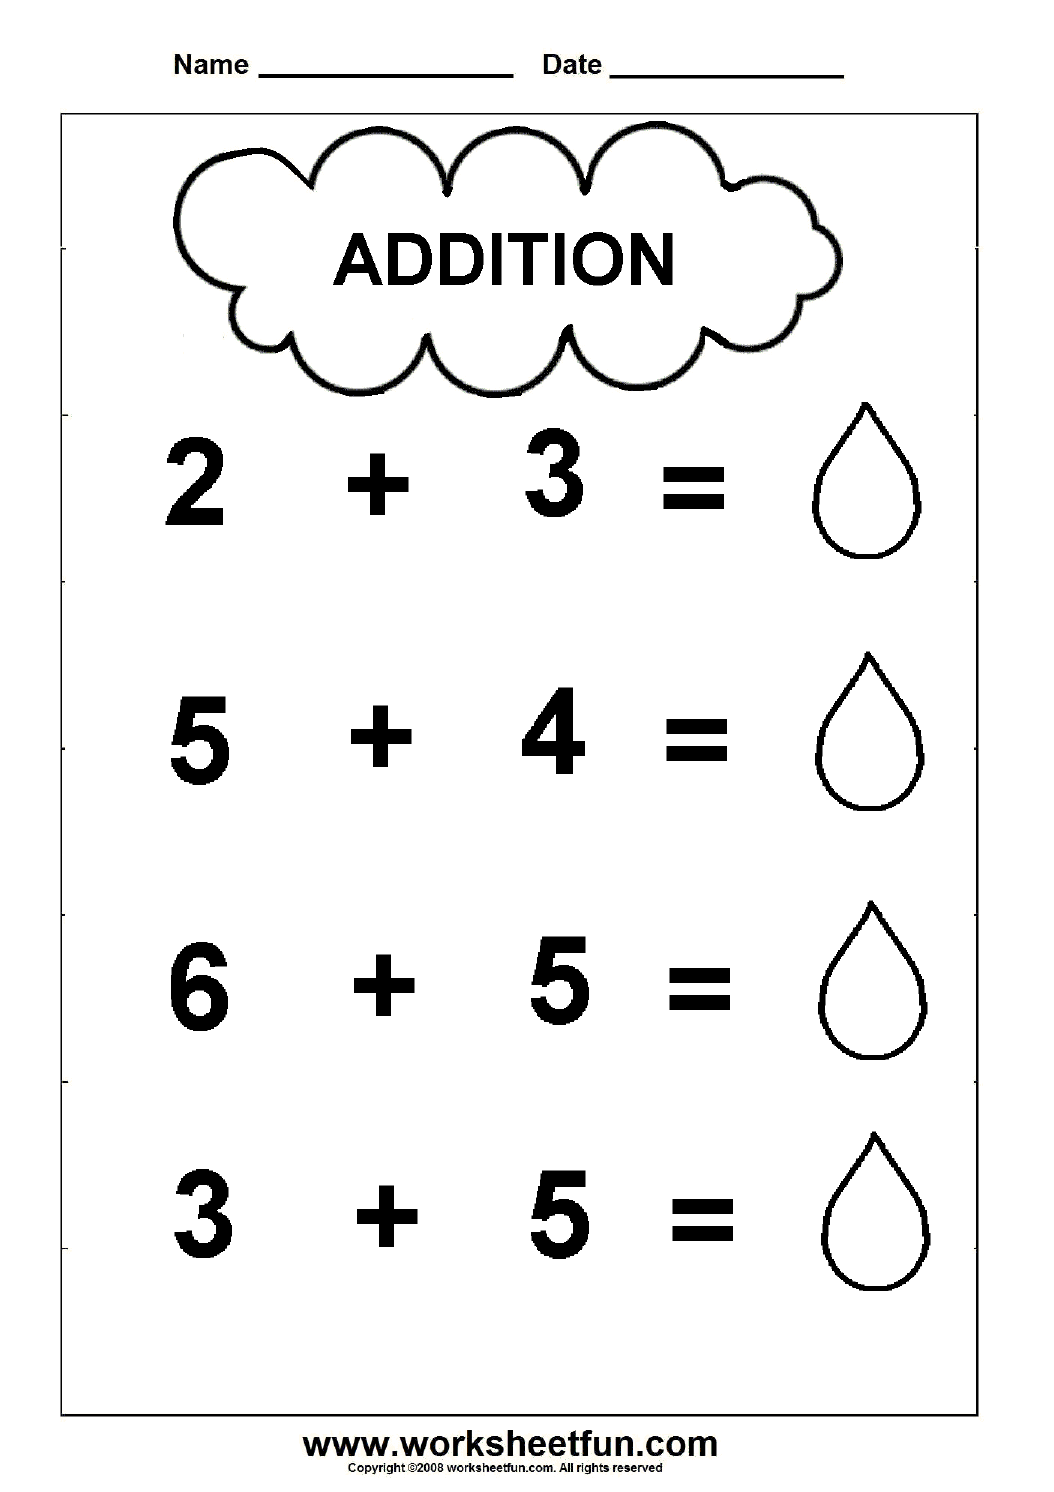 addition 2 worksheets worksheets for kindergartenschool worksheetsmaths resourcespreschool printablesfree printable